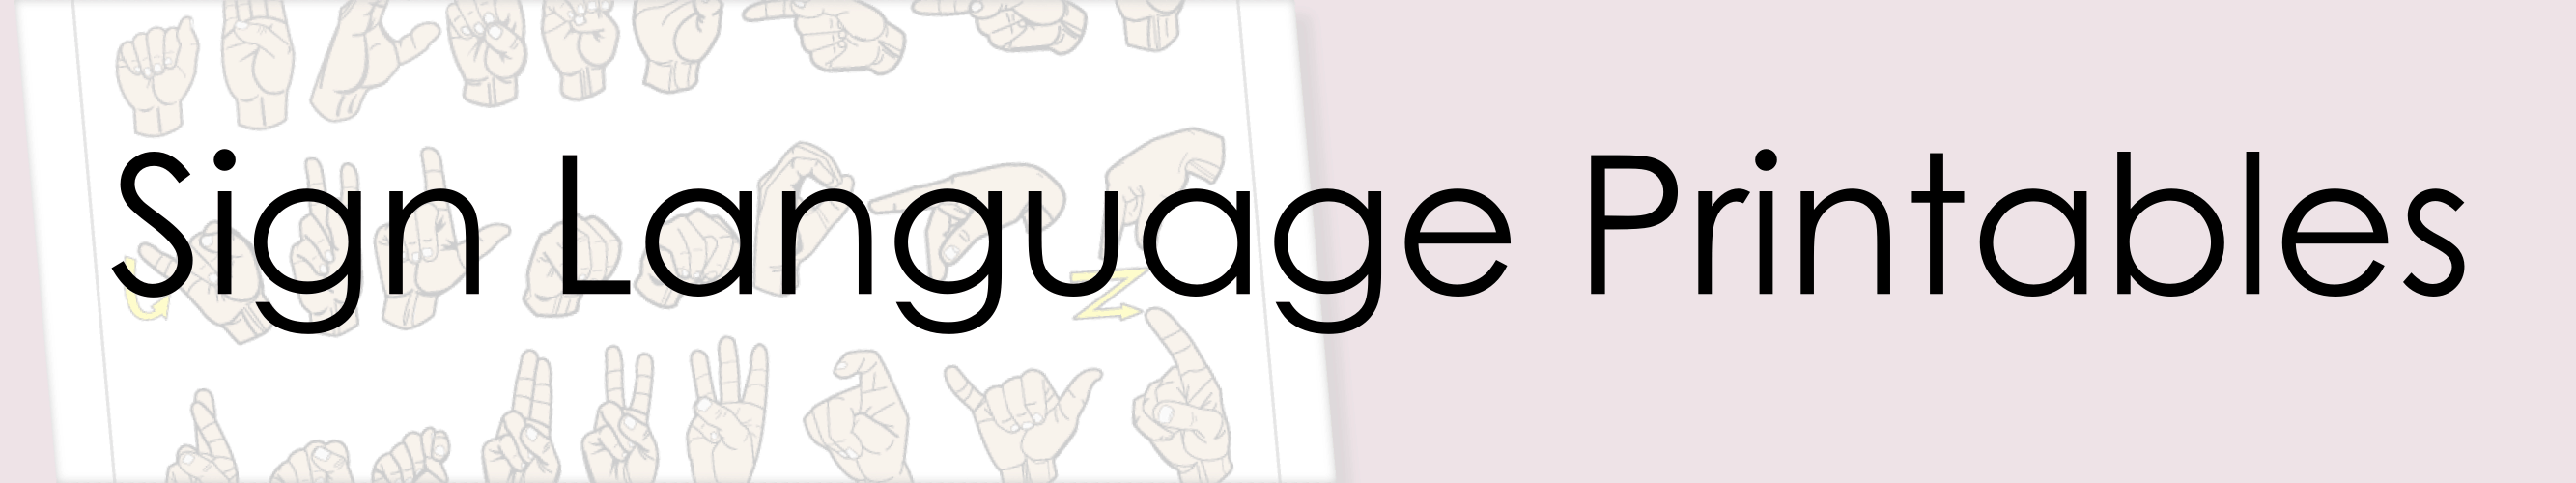 Sign Language Printables